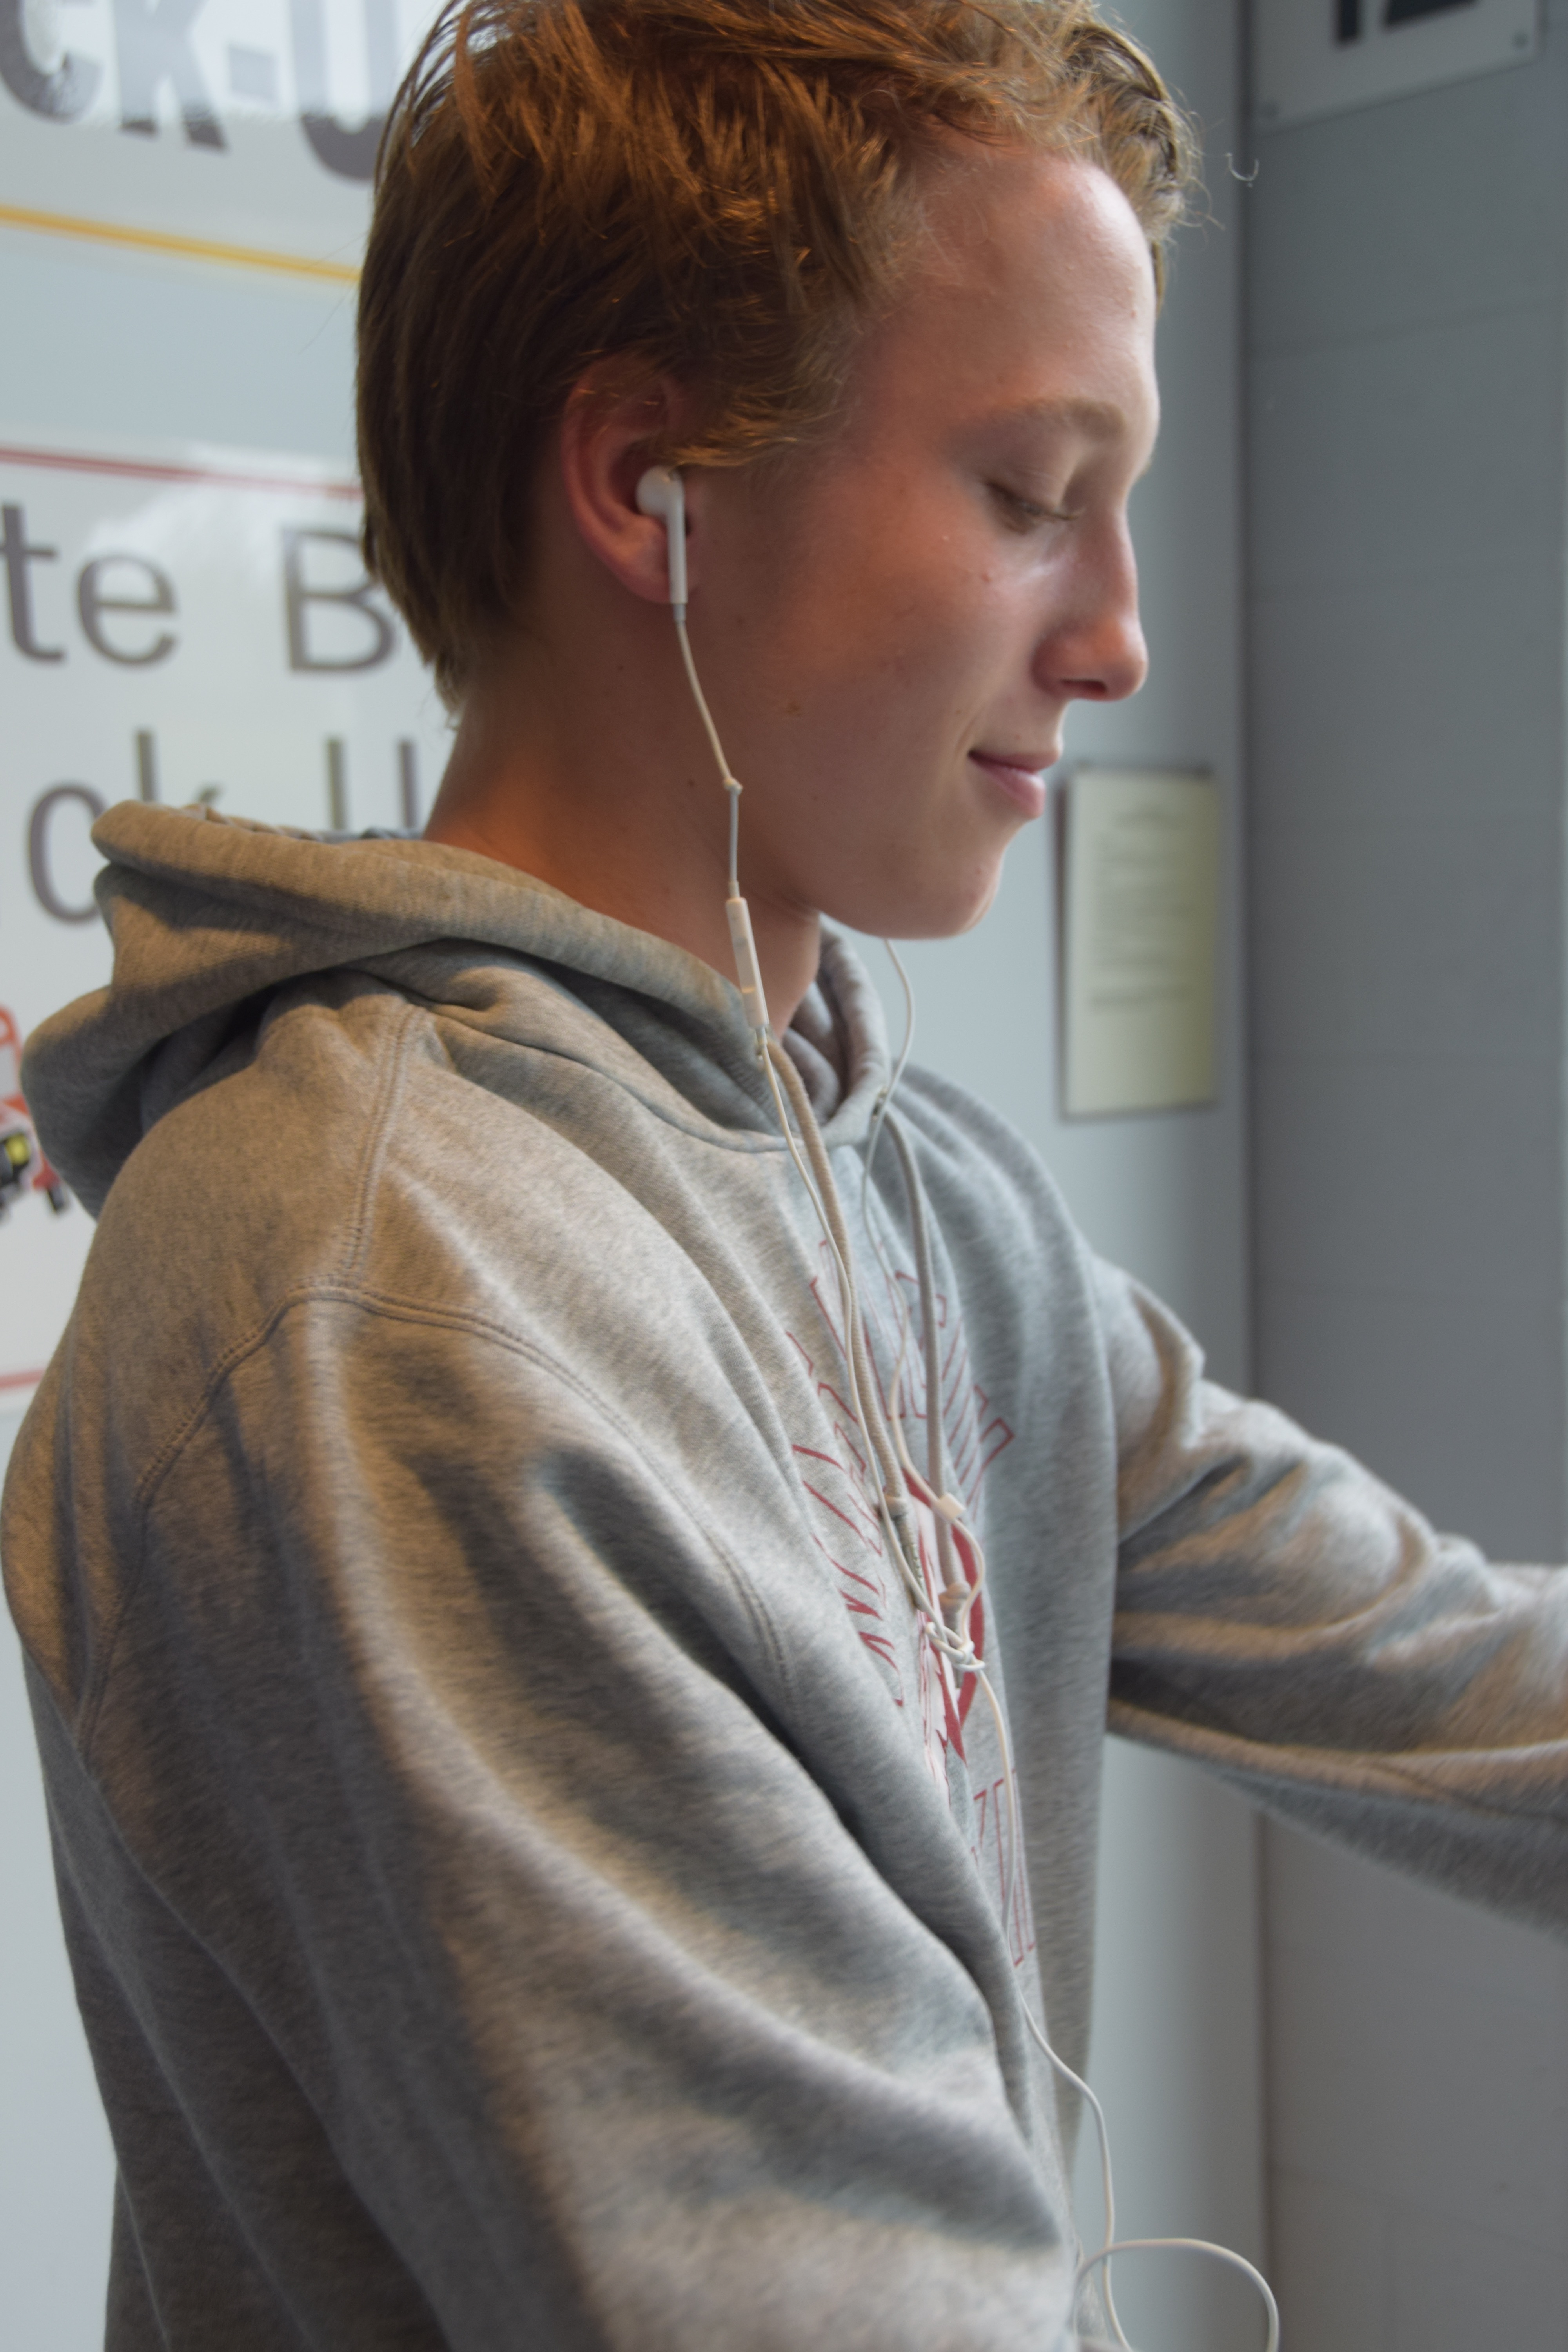 People listen to every different genres between classes